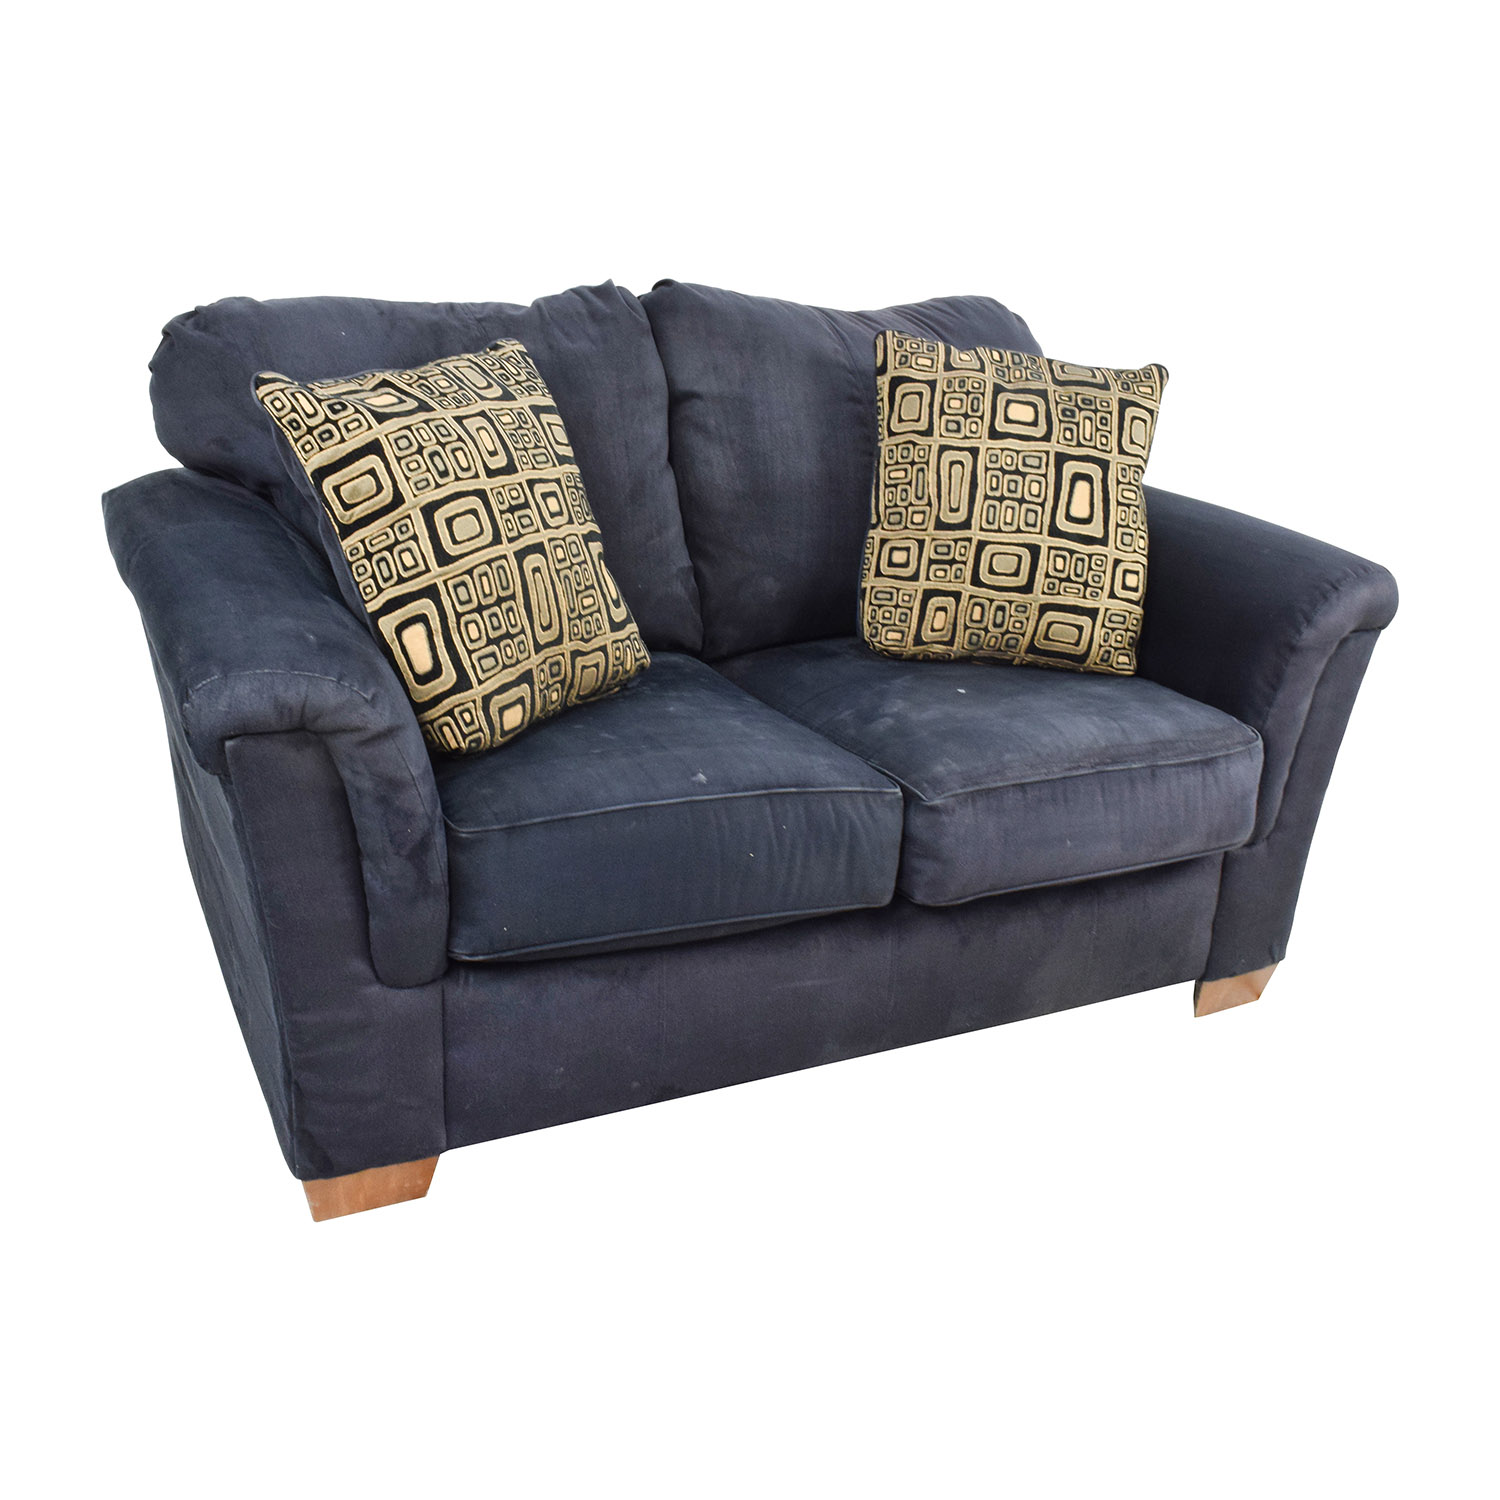 87 off ashley furniture ashley furniture janley loveseat sofas Ashley couch and loveseat